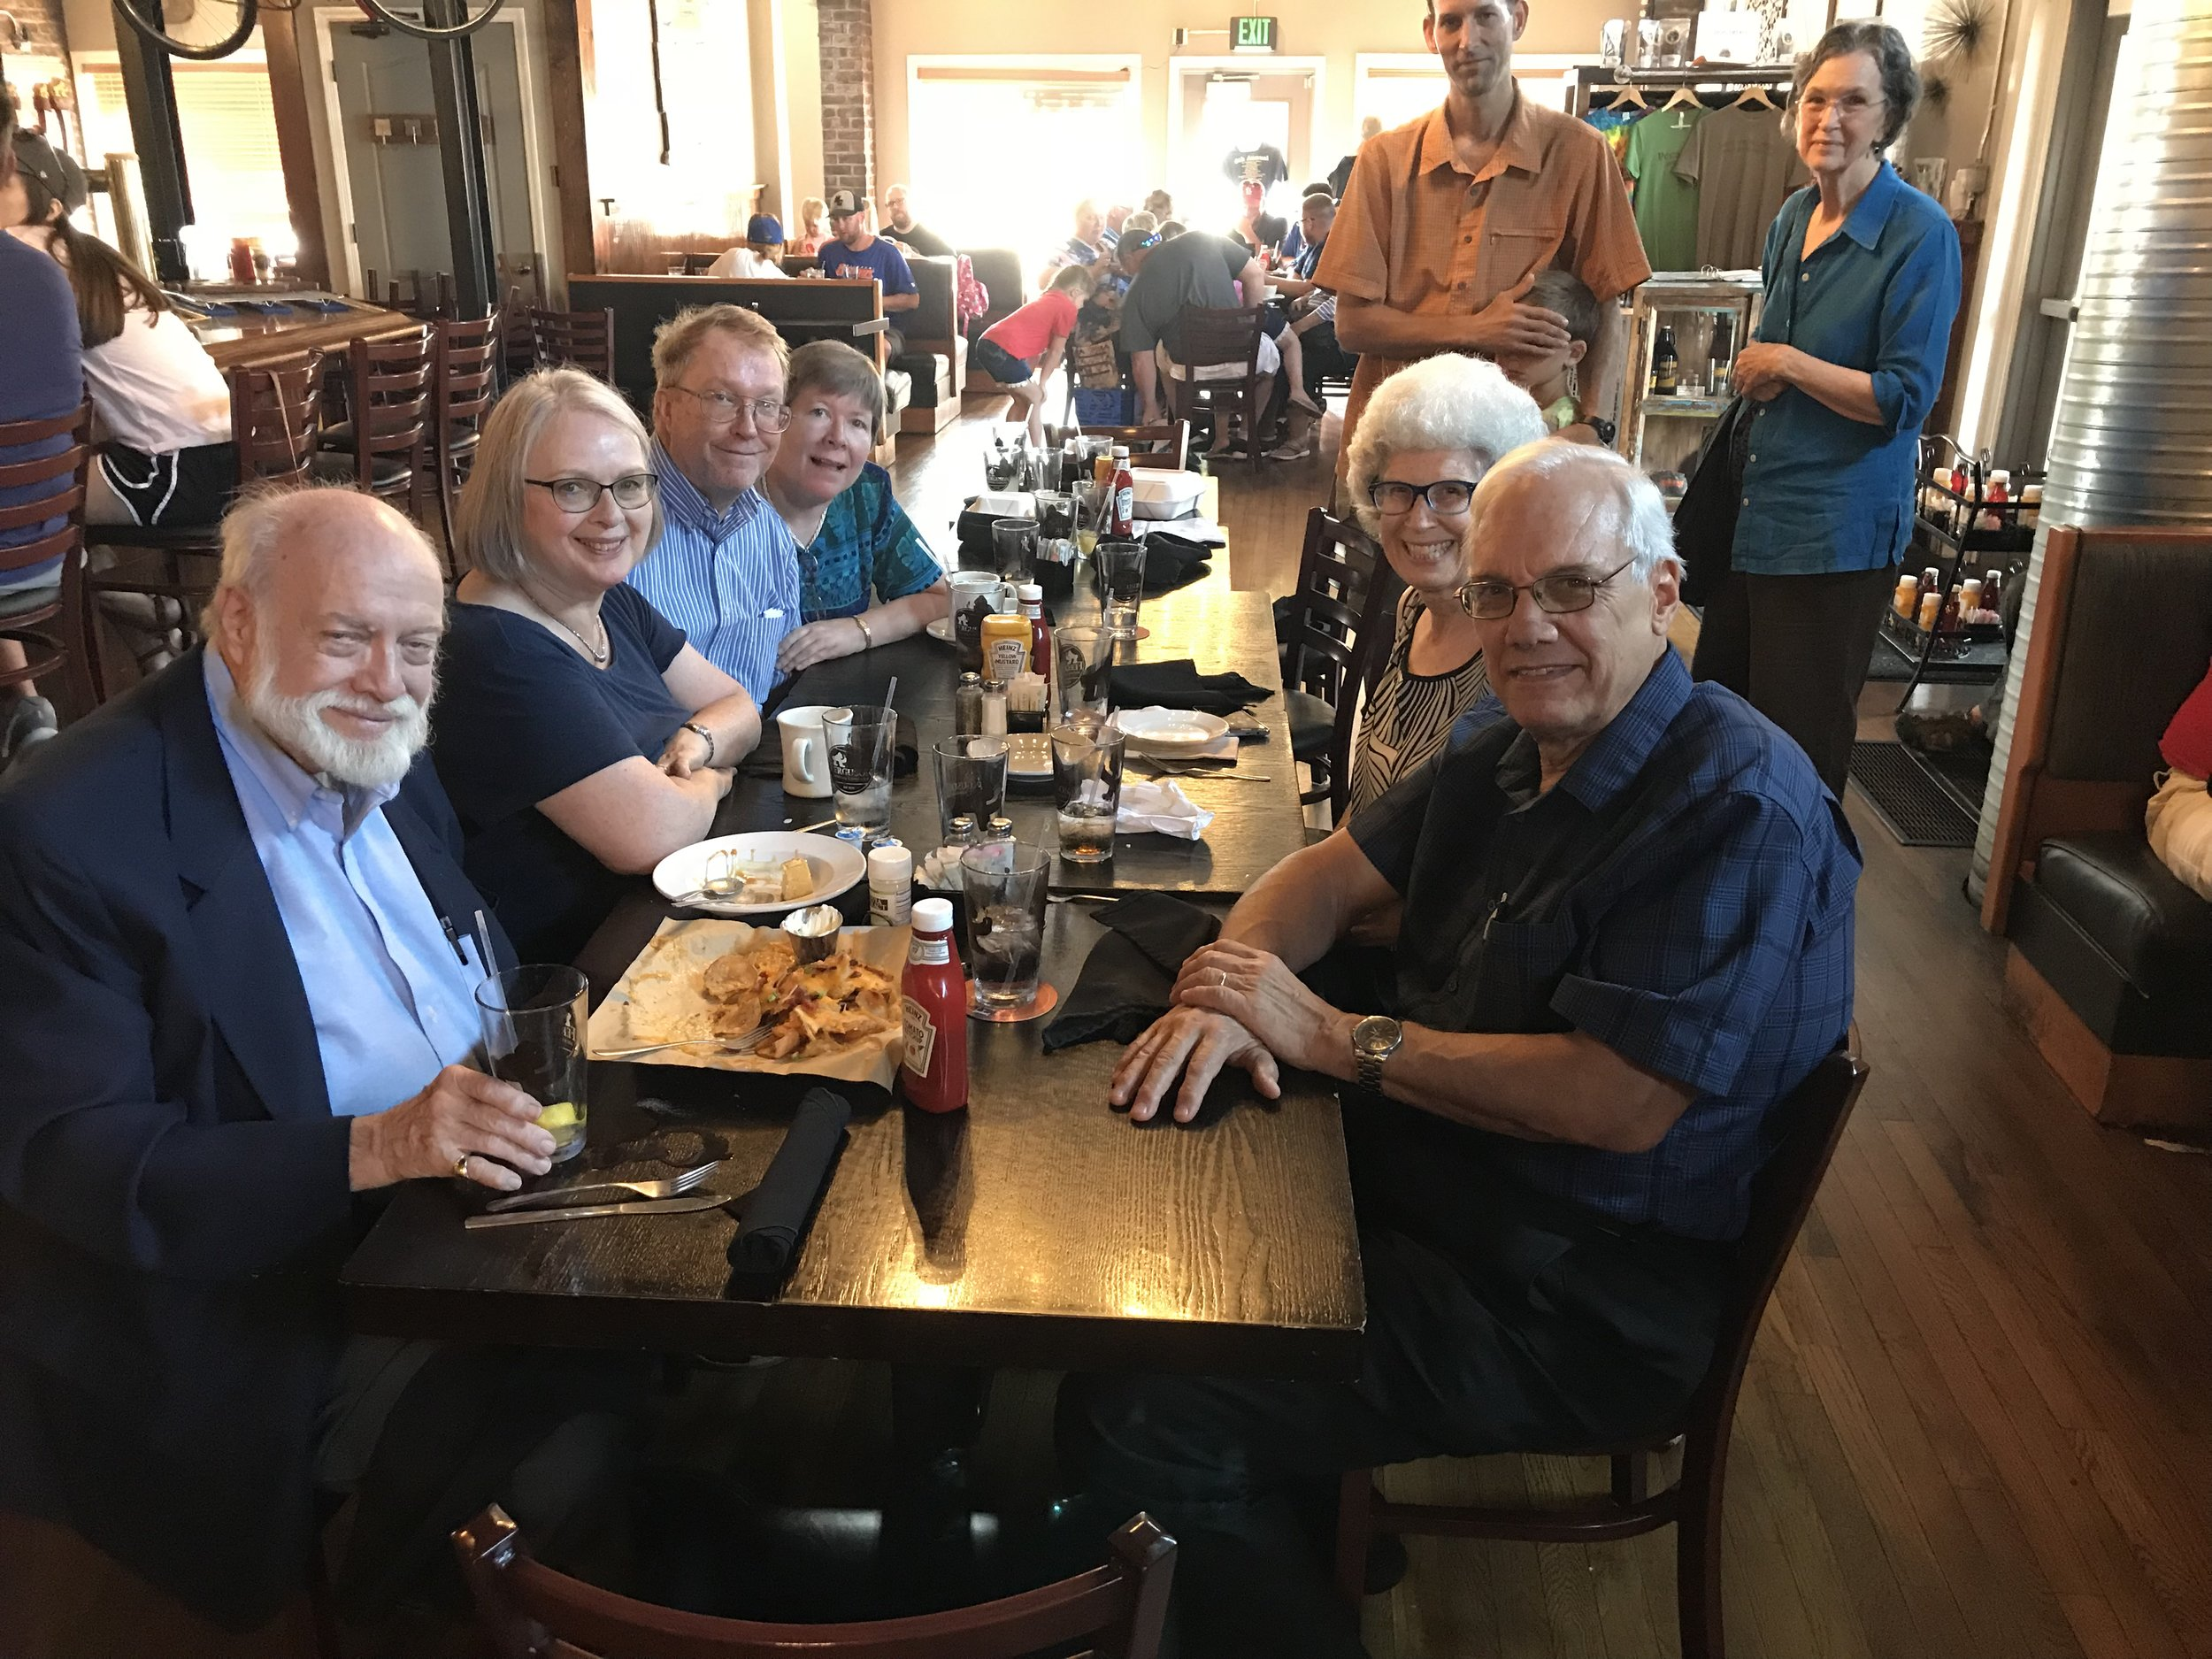 Enjoying lunch with our new friends from the church we attended that morning in St. Louis. The couple on the right: David and Kendra, even know of ECHO and have supported them over the years.